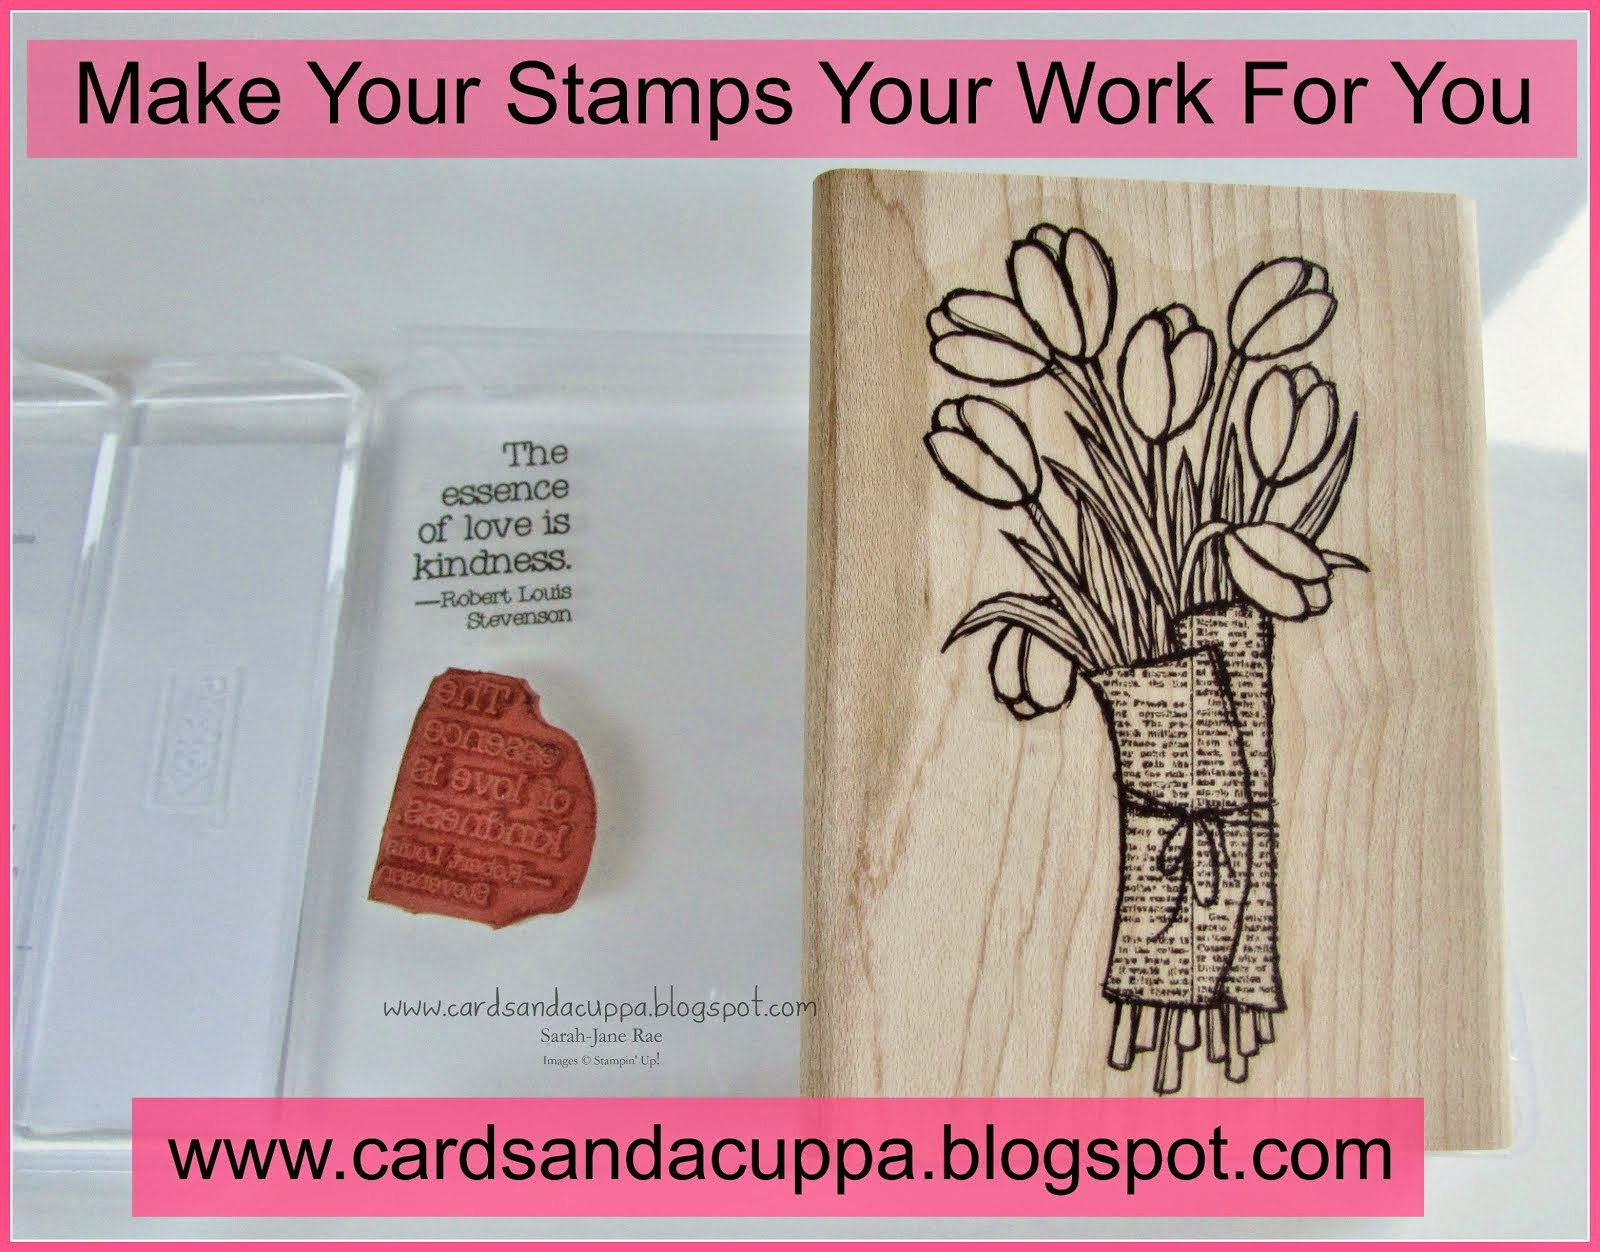 Make Your Stamps Work For You